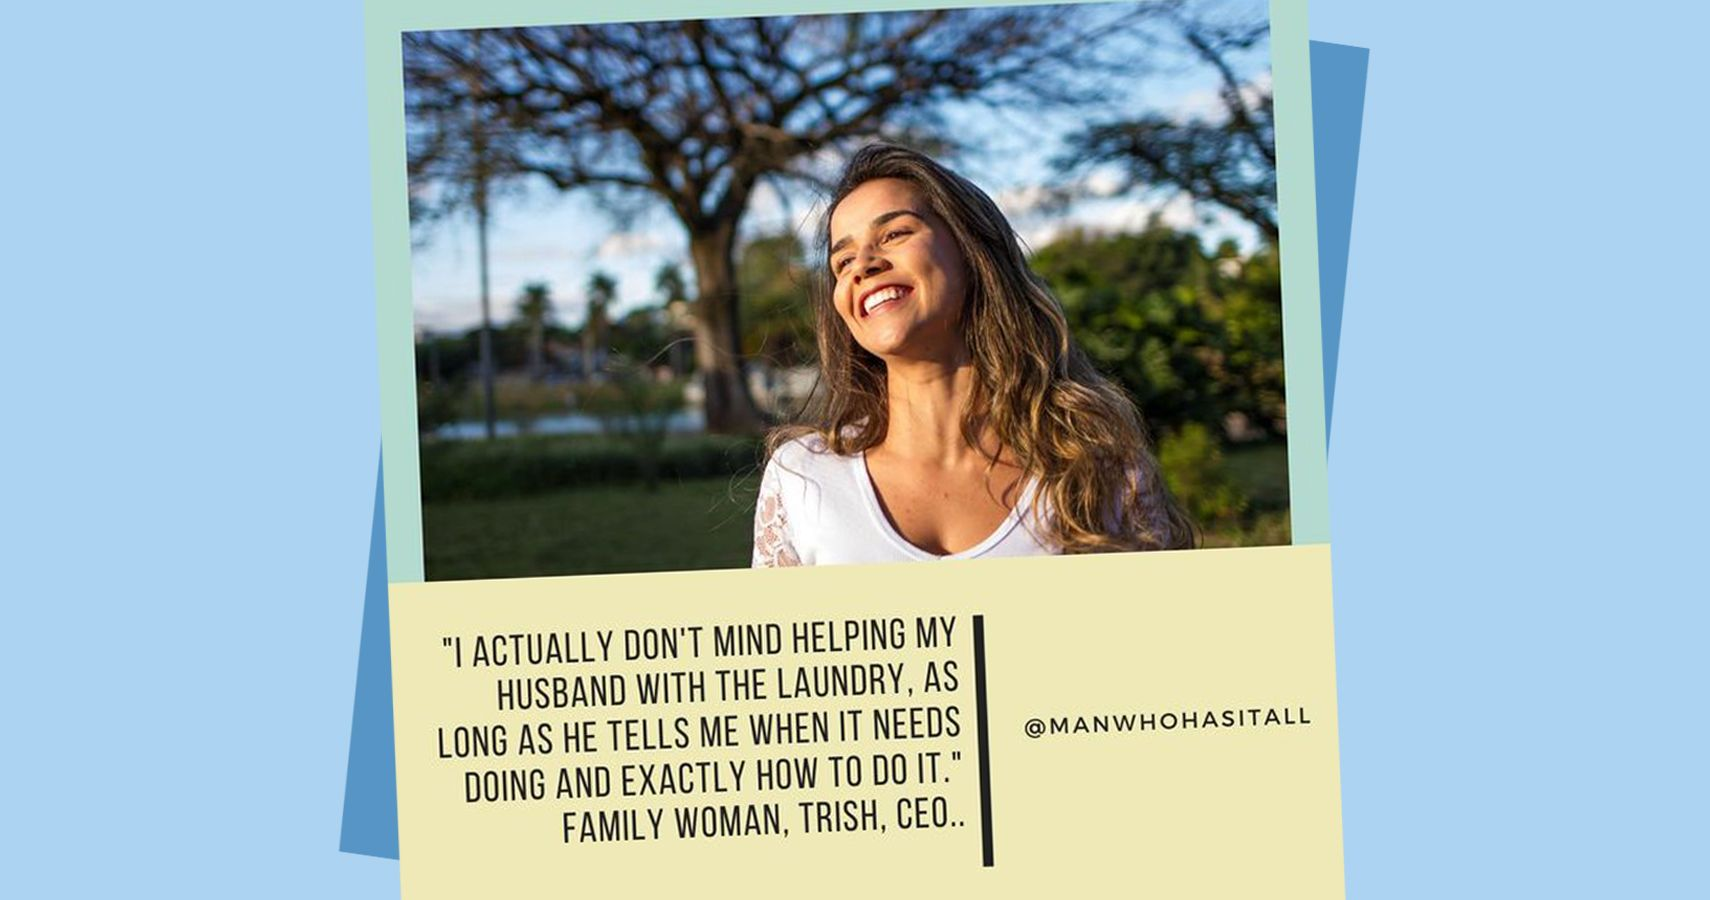 Gender Reversal Meme About Laundry | Moms.com